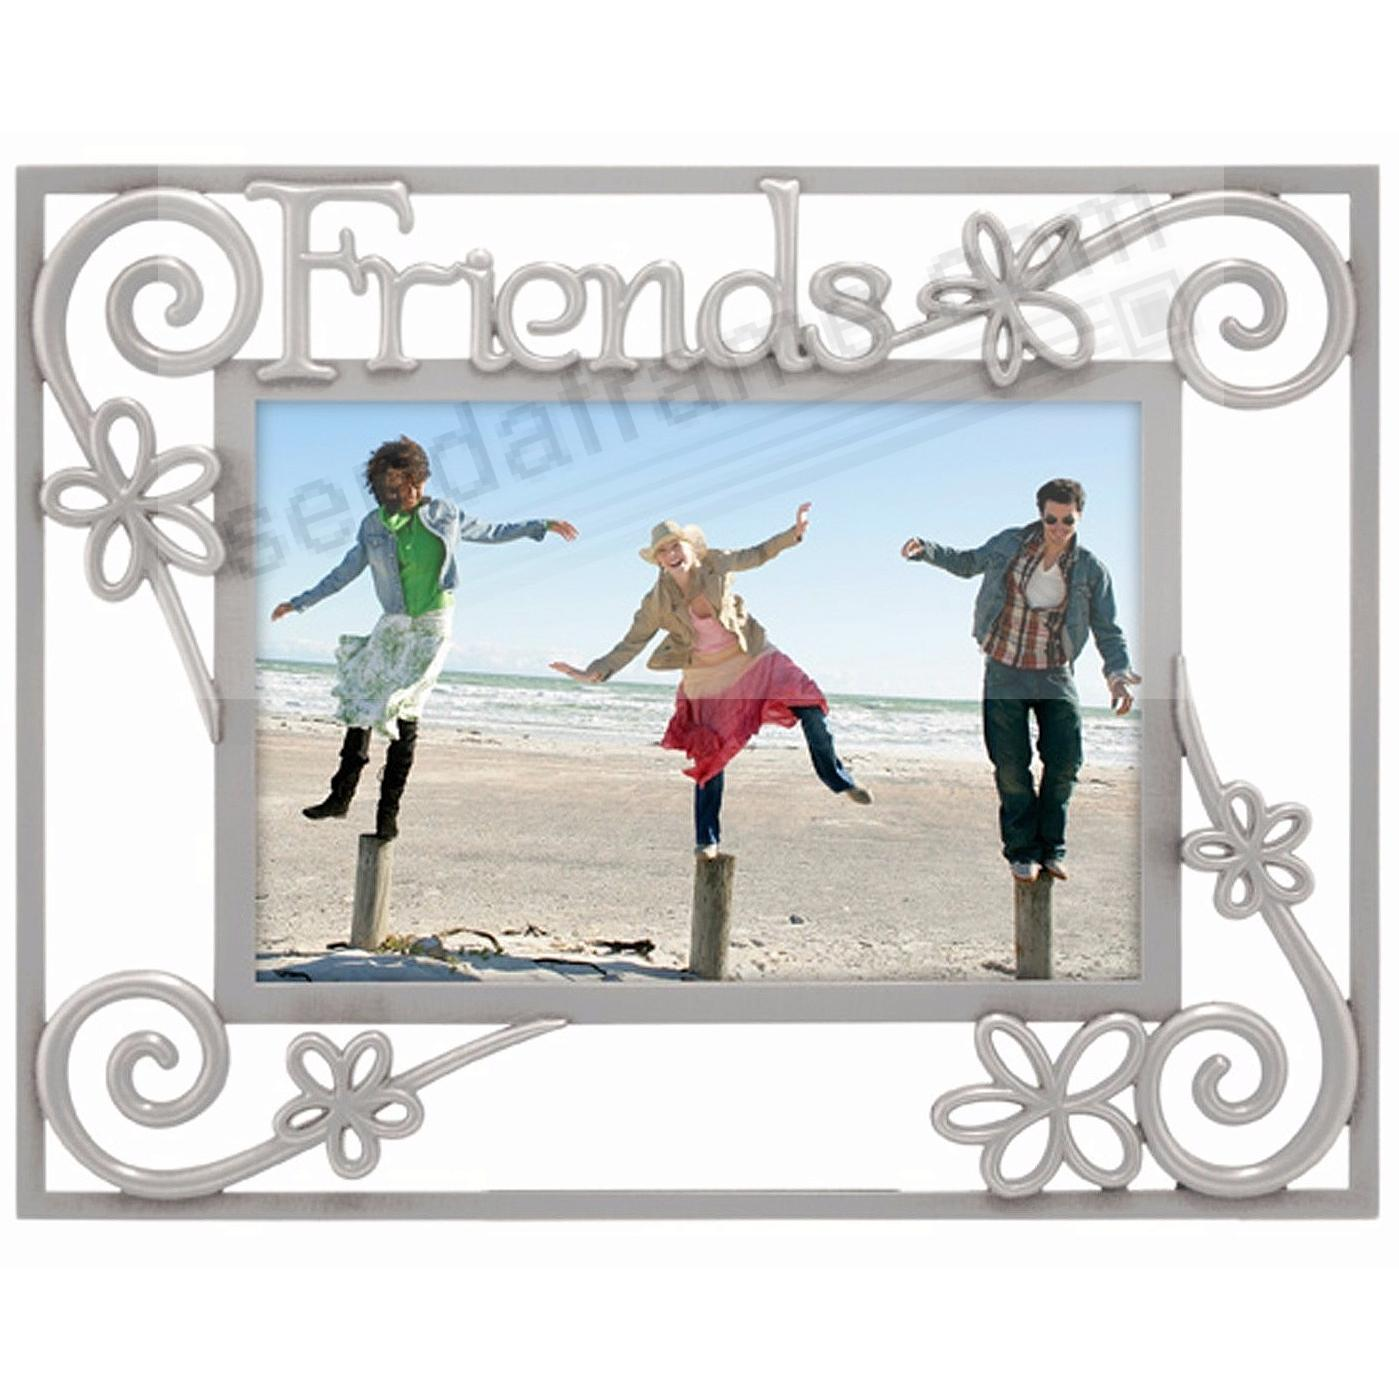 Pewter FRIENDS frame by Malden® - Picture Frames, Photo Albums ...